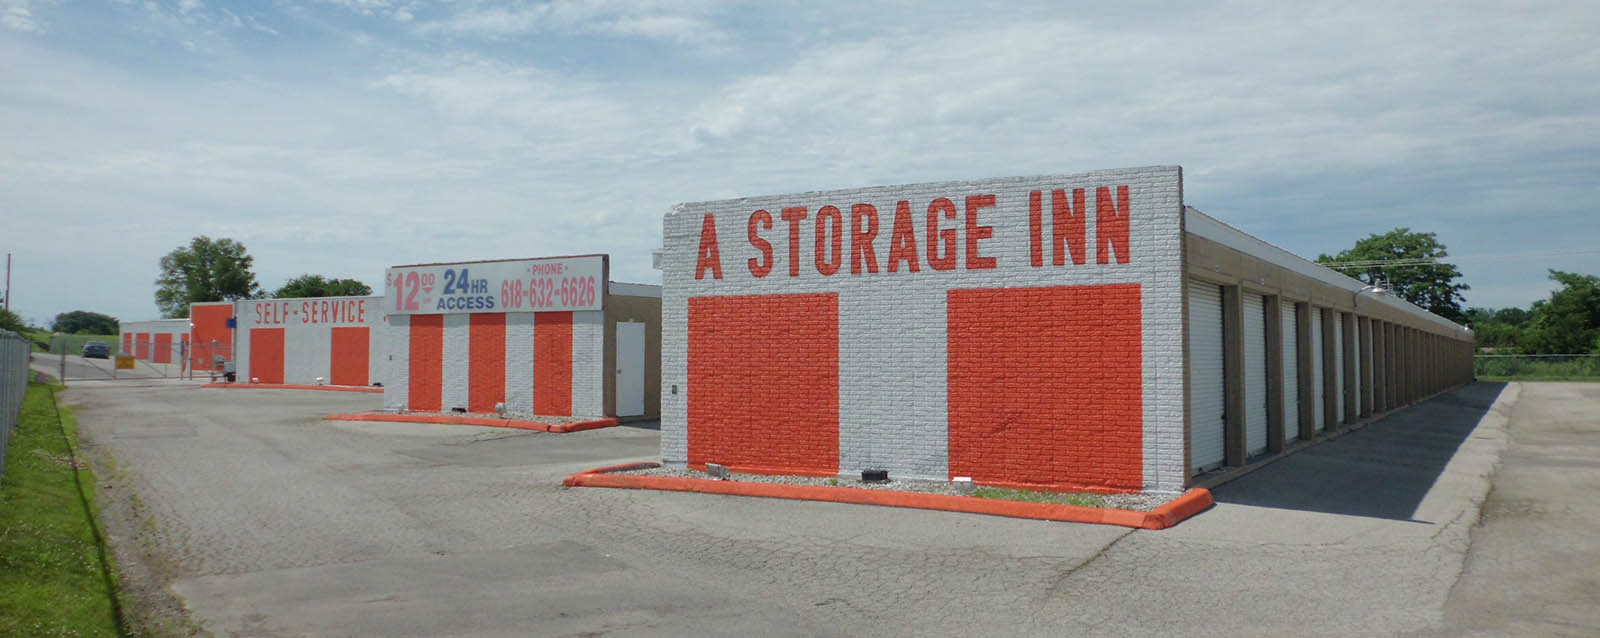 Large 24 hour self storage units in O\'Fallon